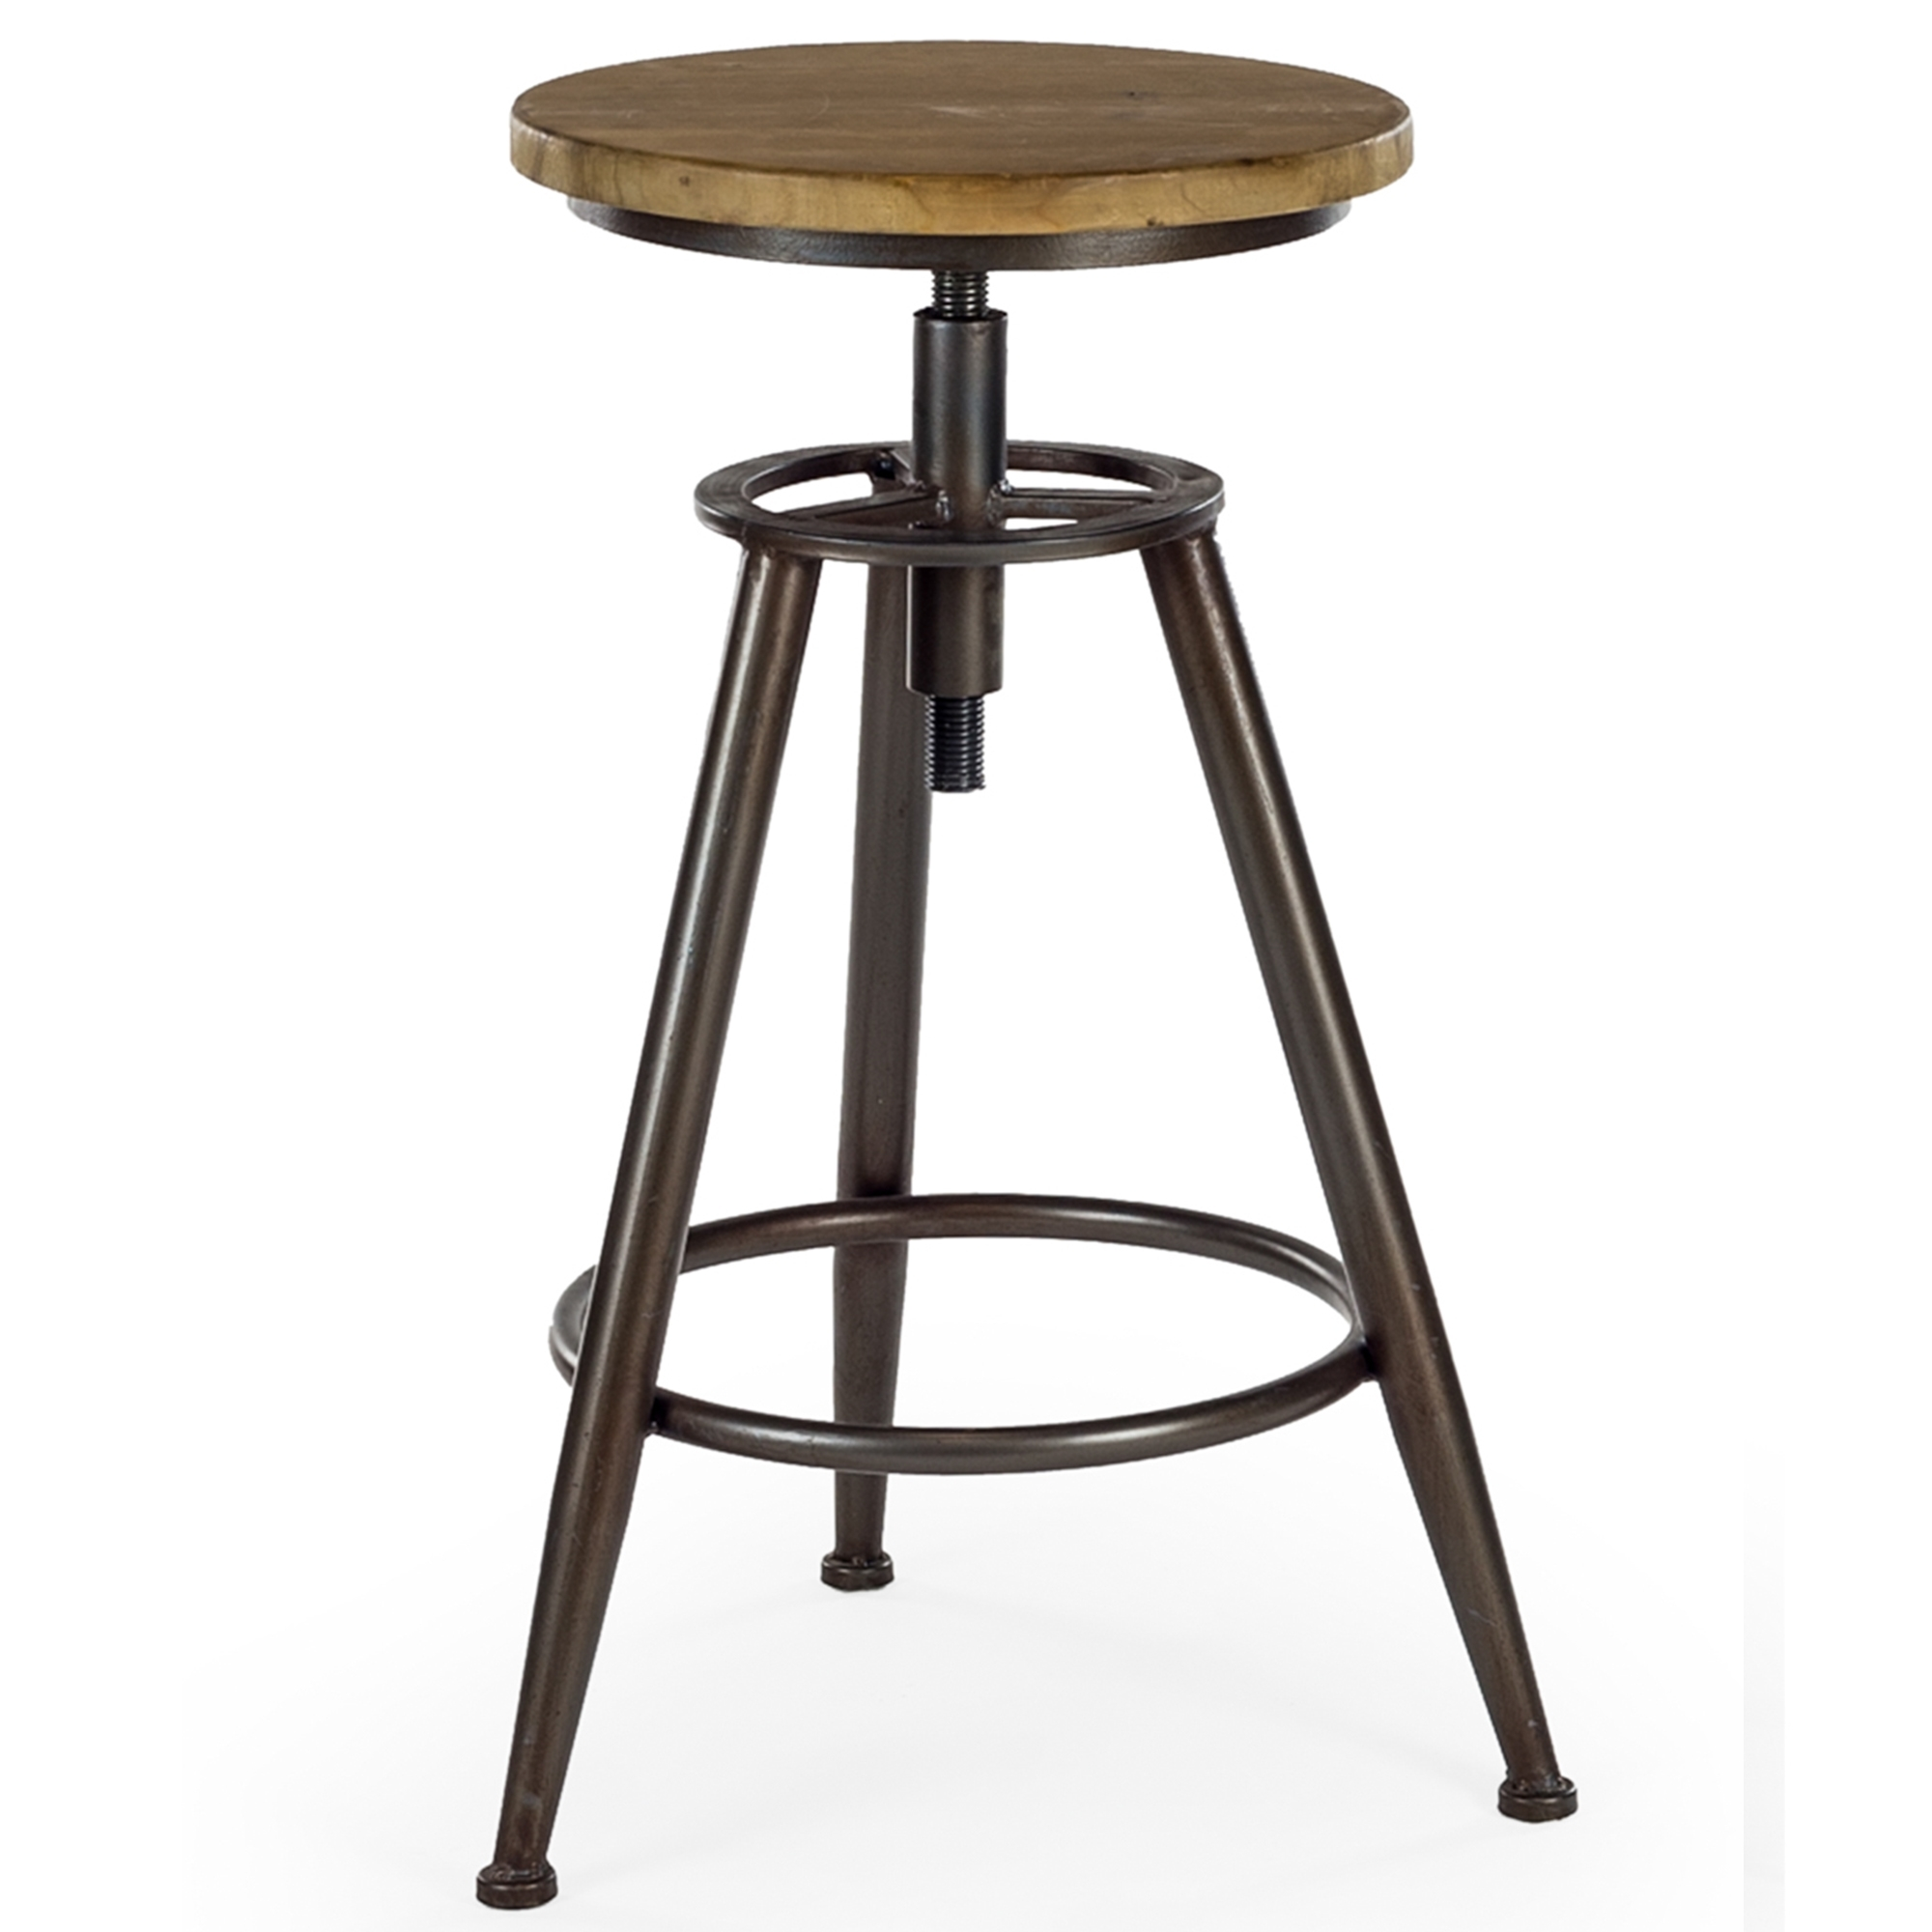 wooden full brushed steel commercial cream vintage iron metal of counter backs swivel kitchen price with industrial back stools and bar wood stainless size stool leather